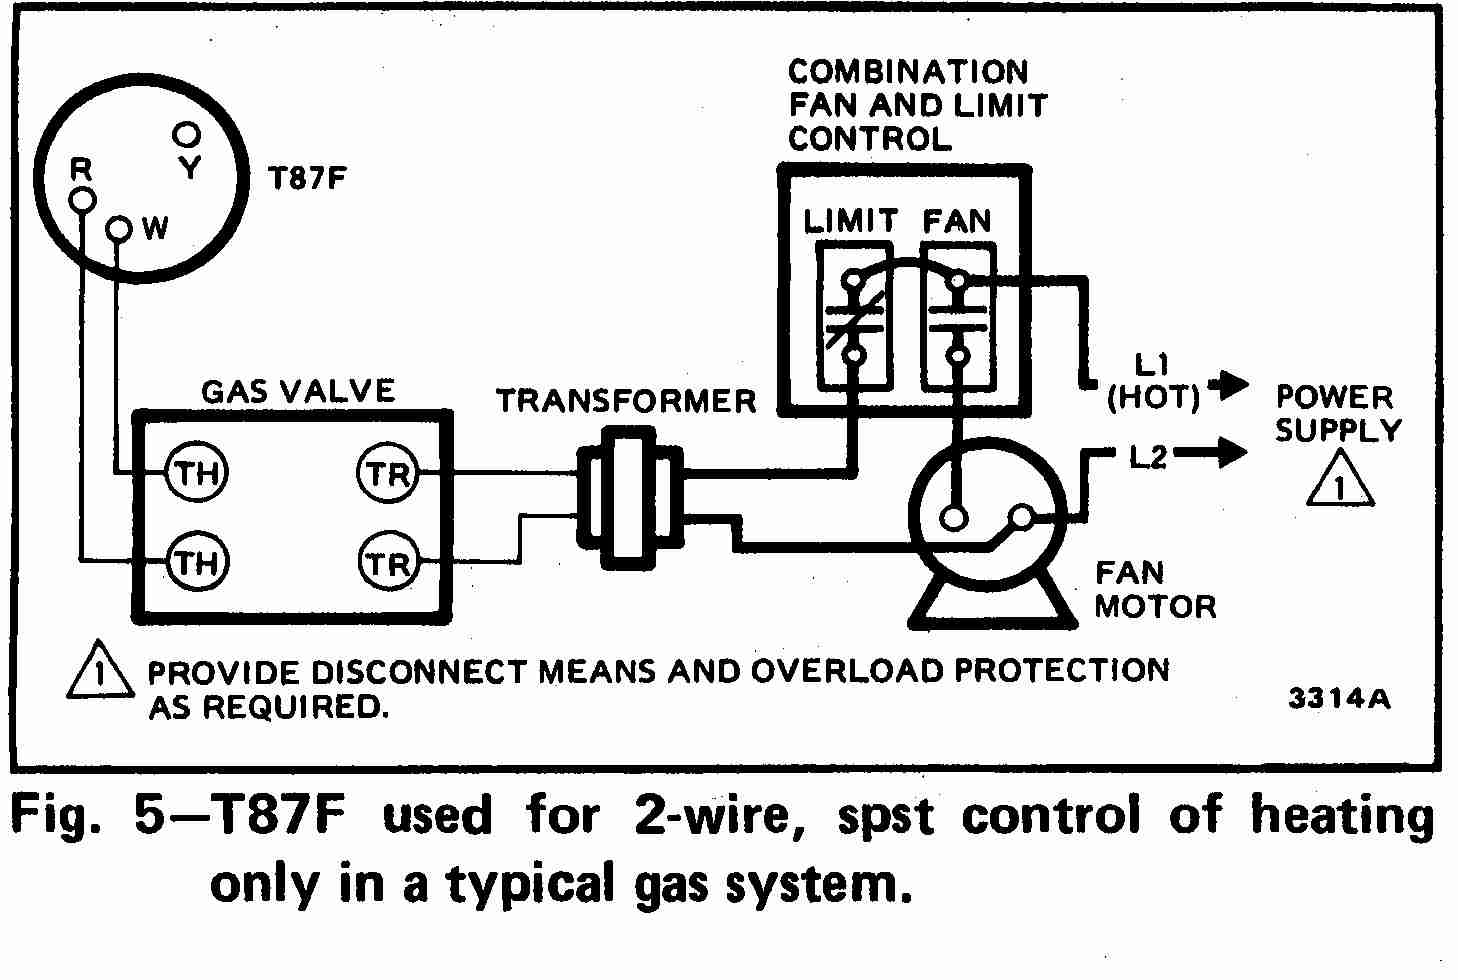 Thermostat_Wiring_Instructions on Hvac Condenser Wiring Diagram